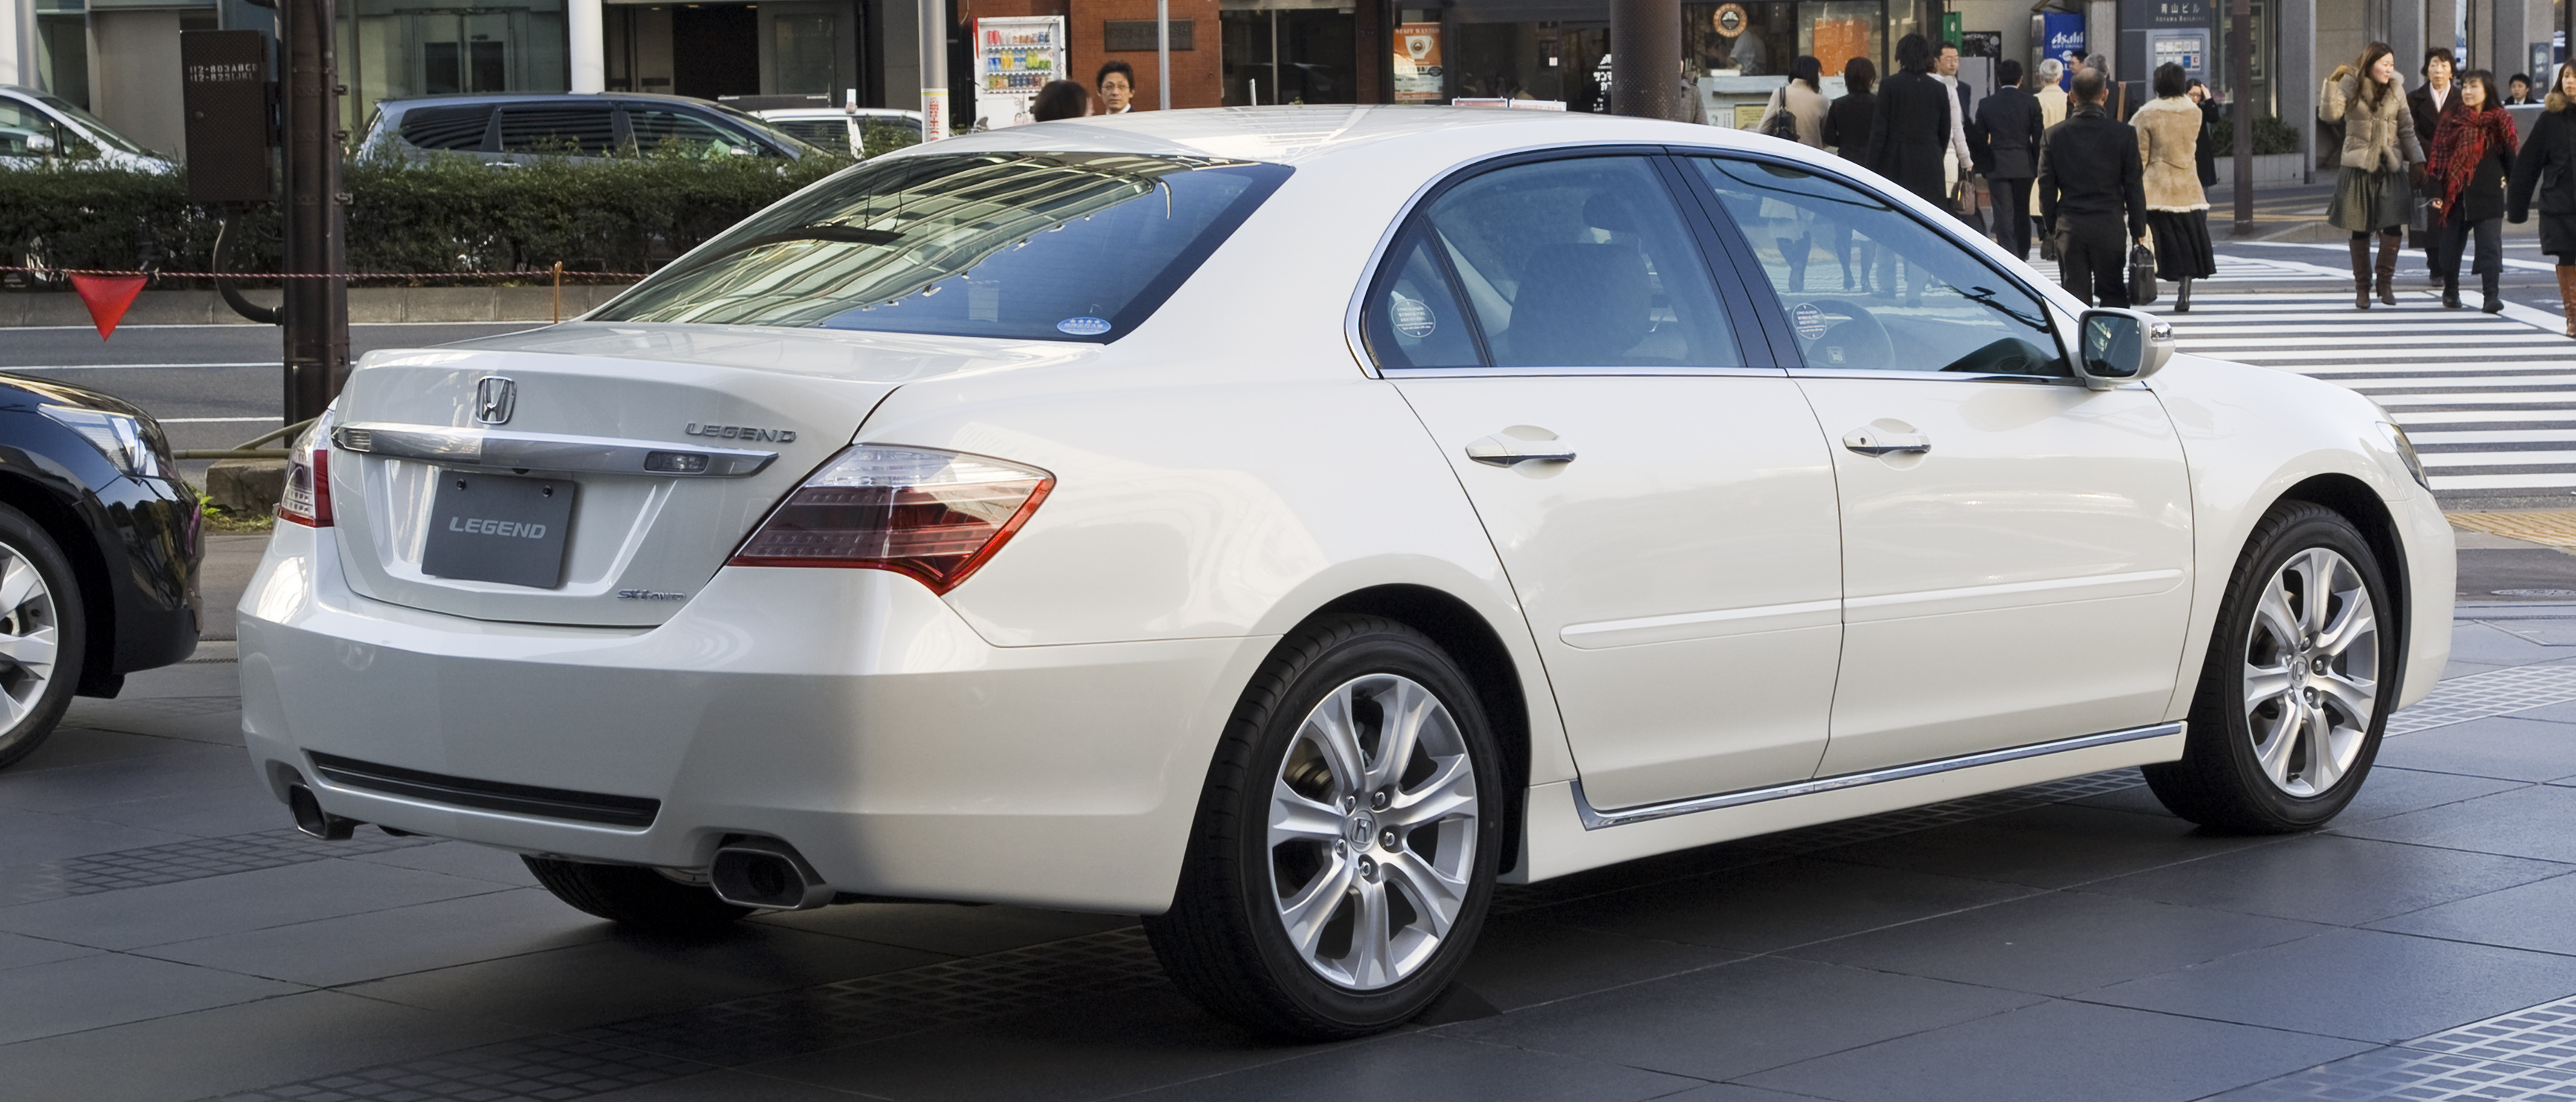 2009 Honda Legend #6